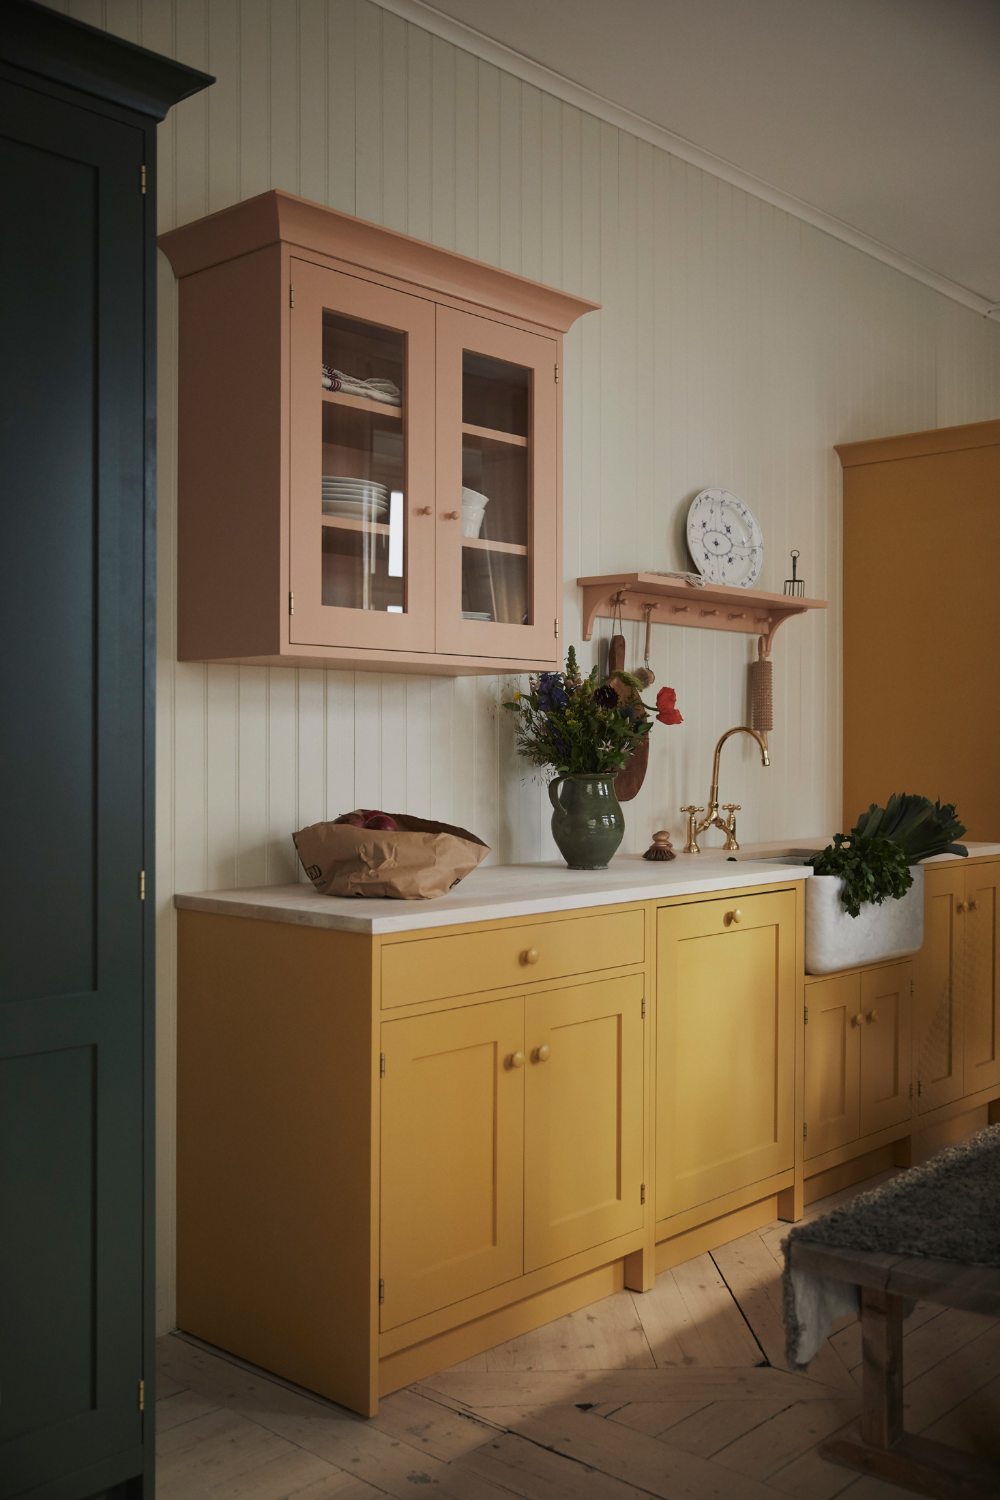 Kitchen of the Week: A Pastel Kitchen Inspired by Swedish Artist Carl Larsson